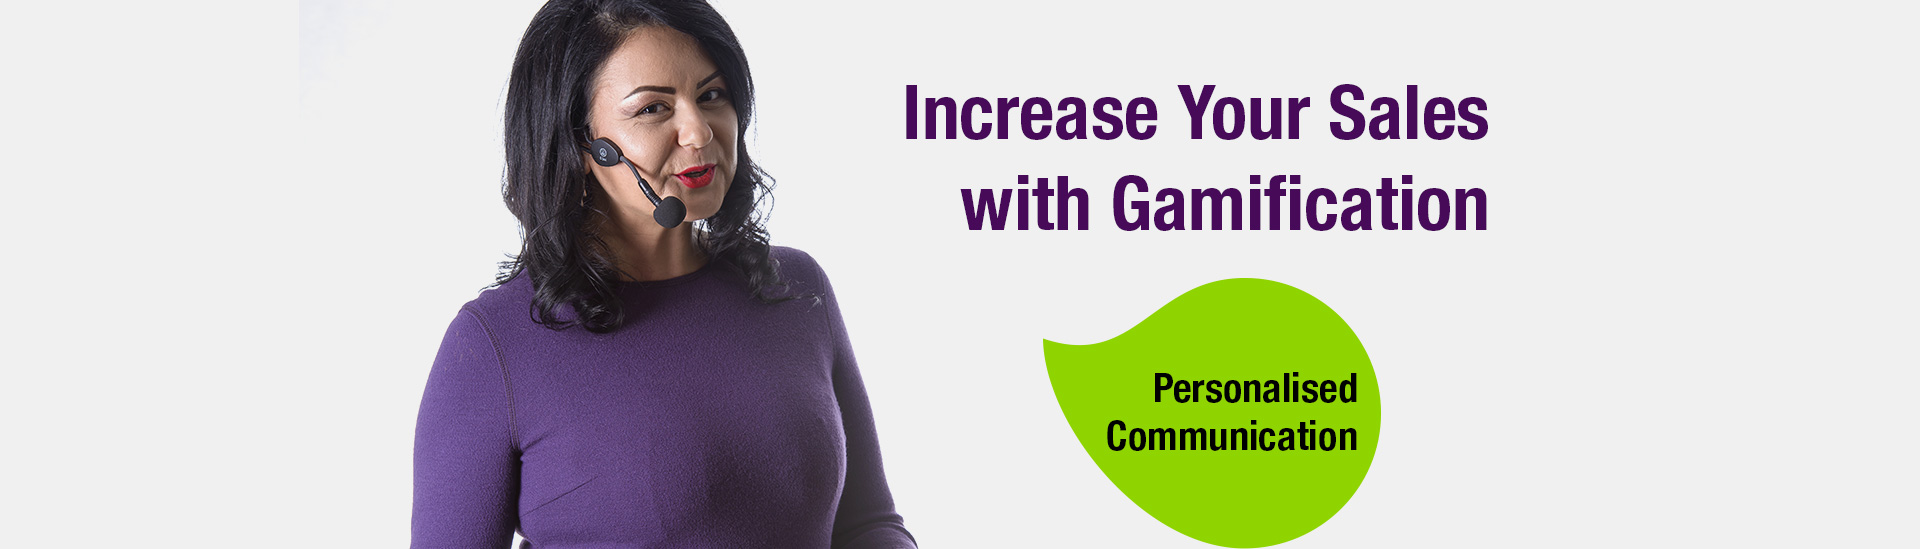 increase-your-sales-with-gamification-header.jpg